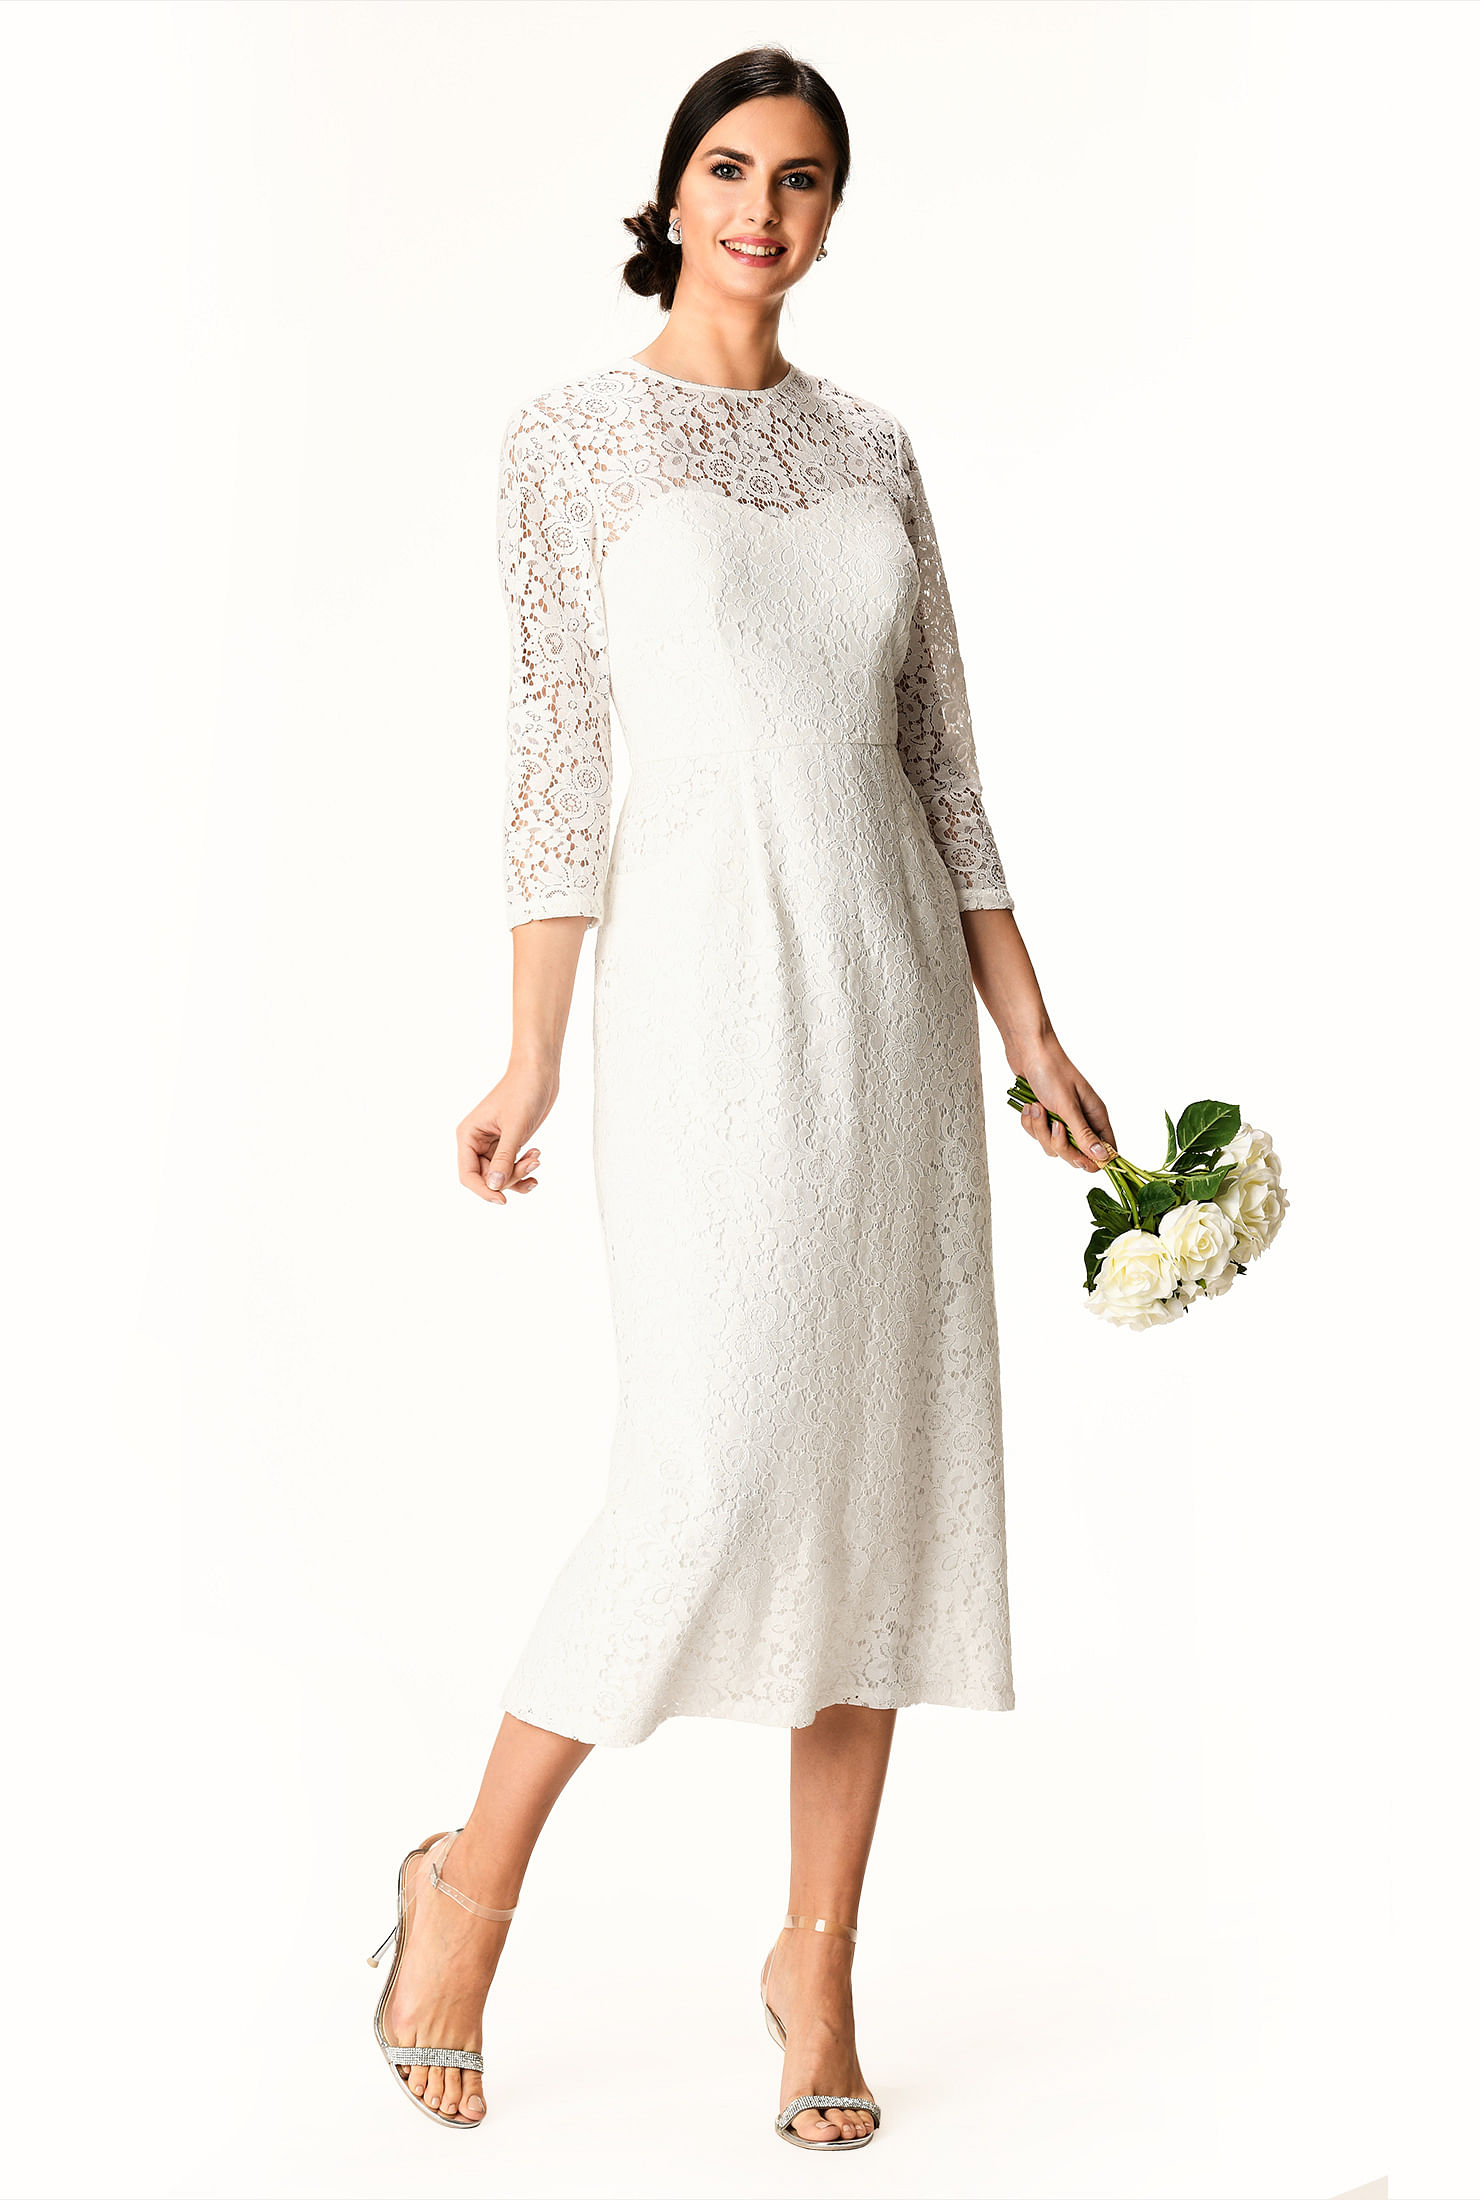 60s Wedding Dresses | 70s Wedding Dresses Illusion floral lace sheath dress $99.95 AT vintagedancer.com